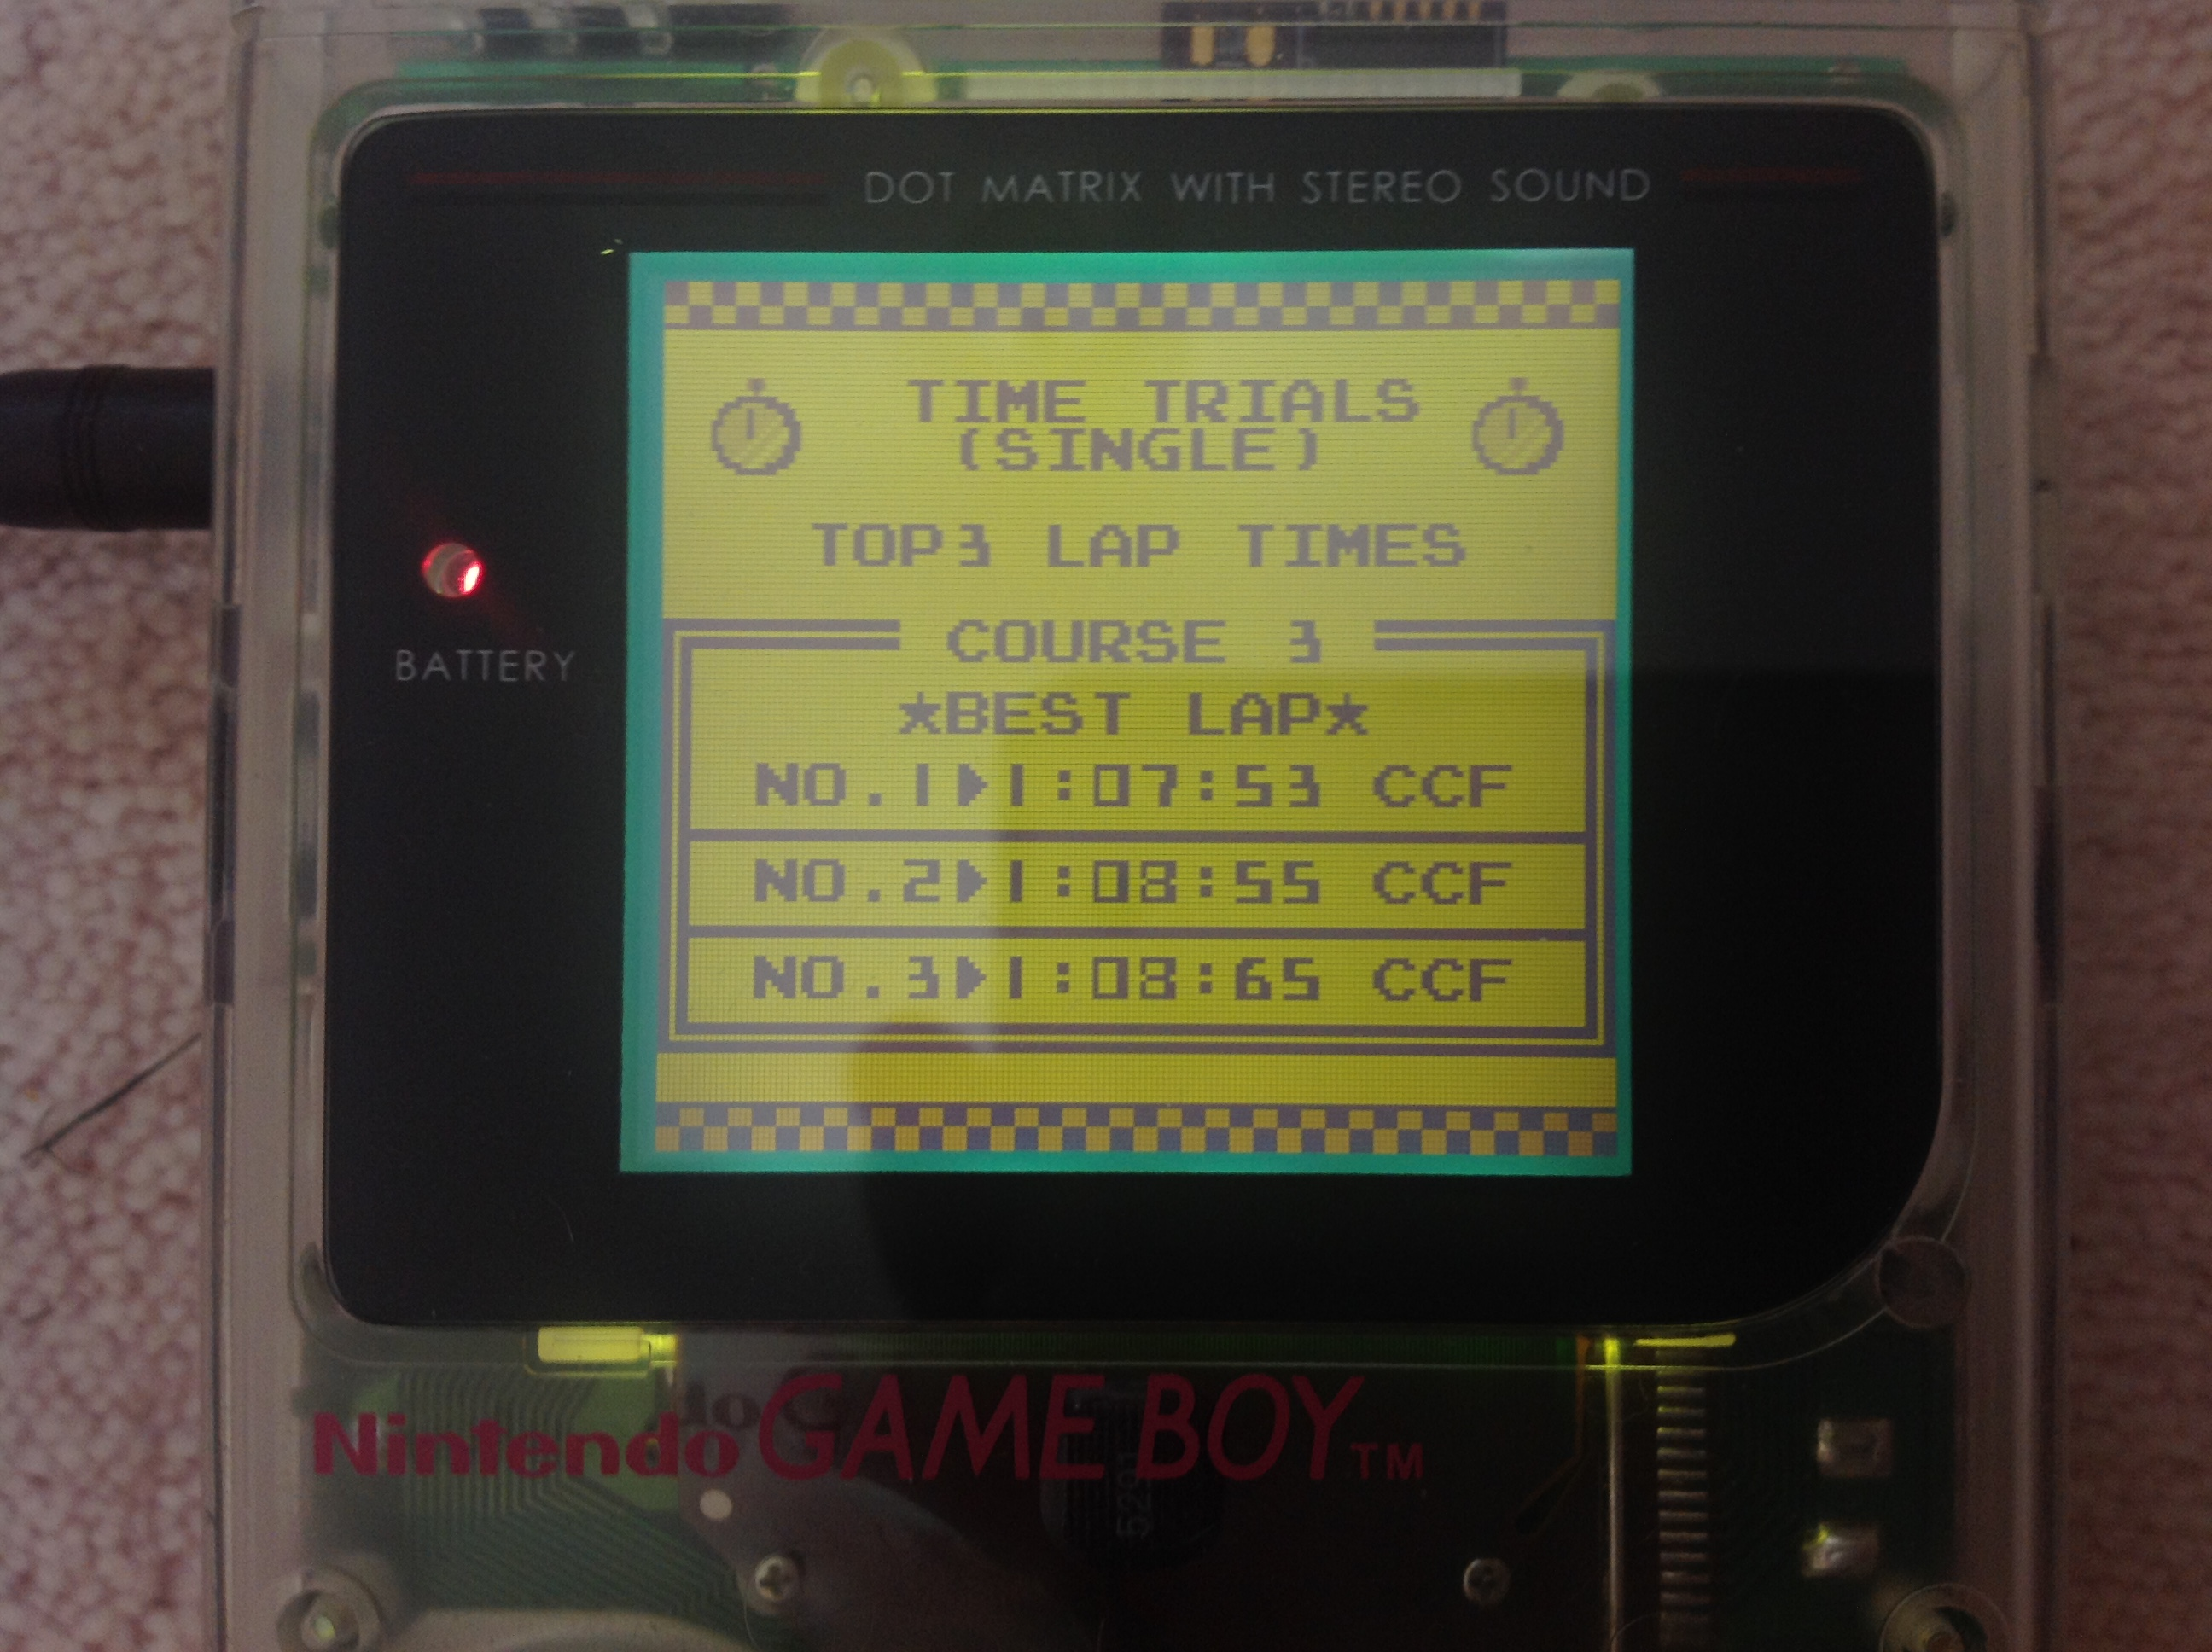 CoCoForest: F-1 Race: Time Trials: Single: U.S.A. [Best Lap] (Game Boy) 0:01:07.53 points on 2018-10-22 10:39:34